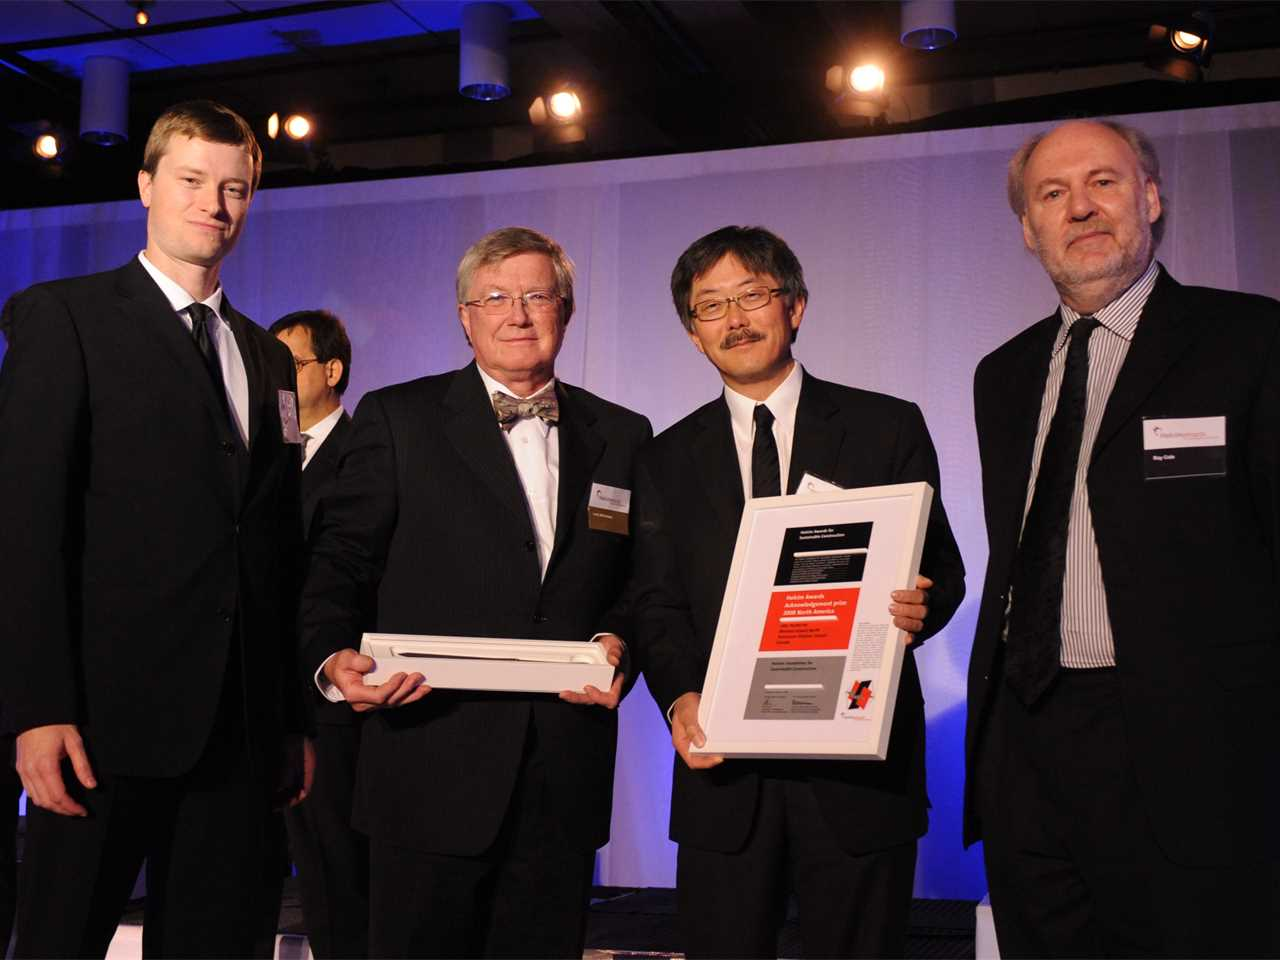 Holcim Awards 2008 ceremony for North America – Montreal, QC, Canada